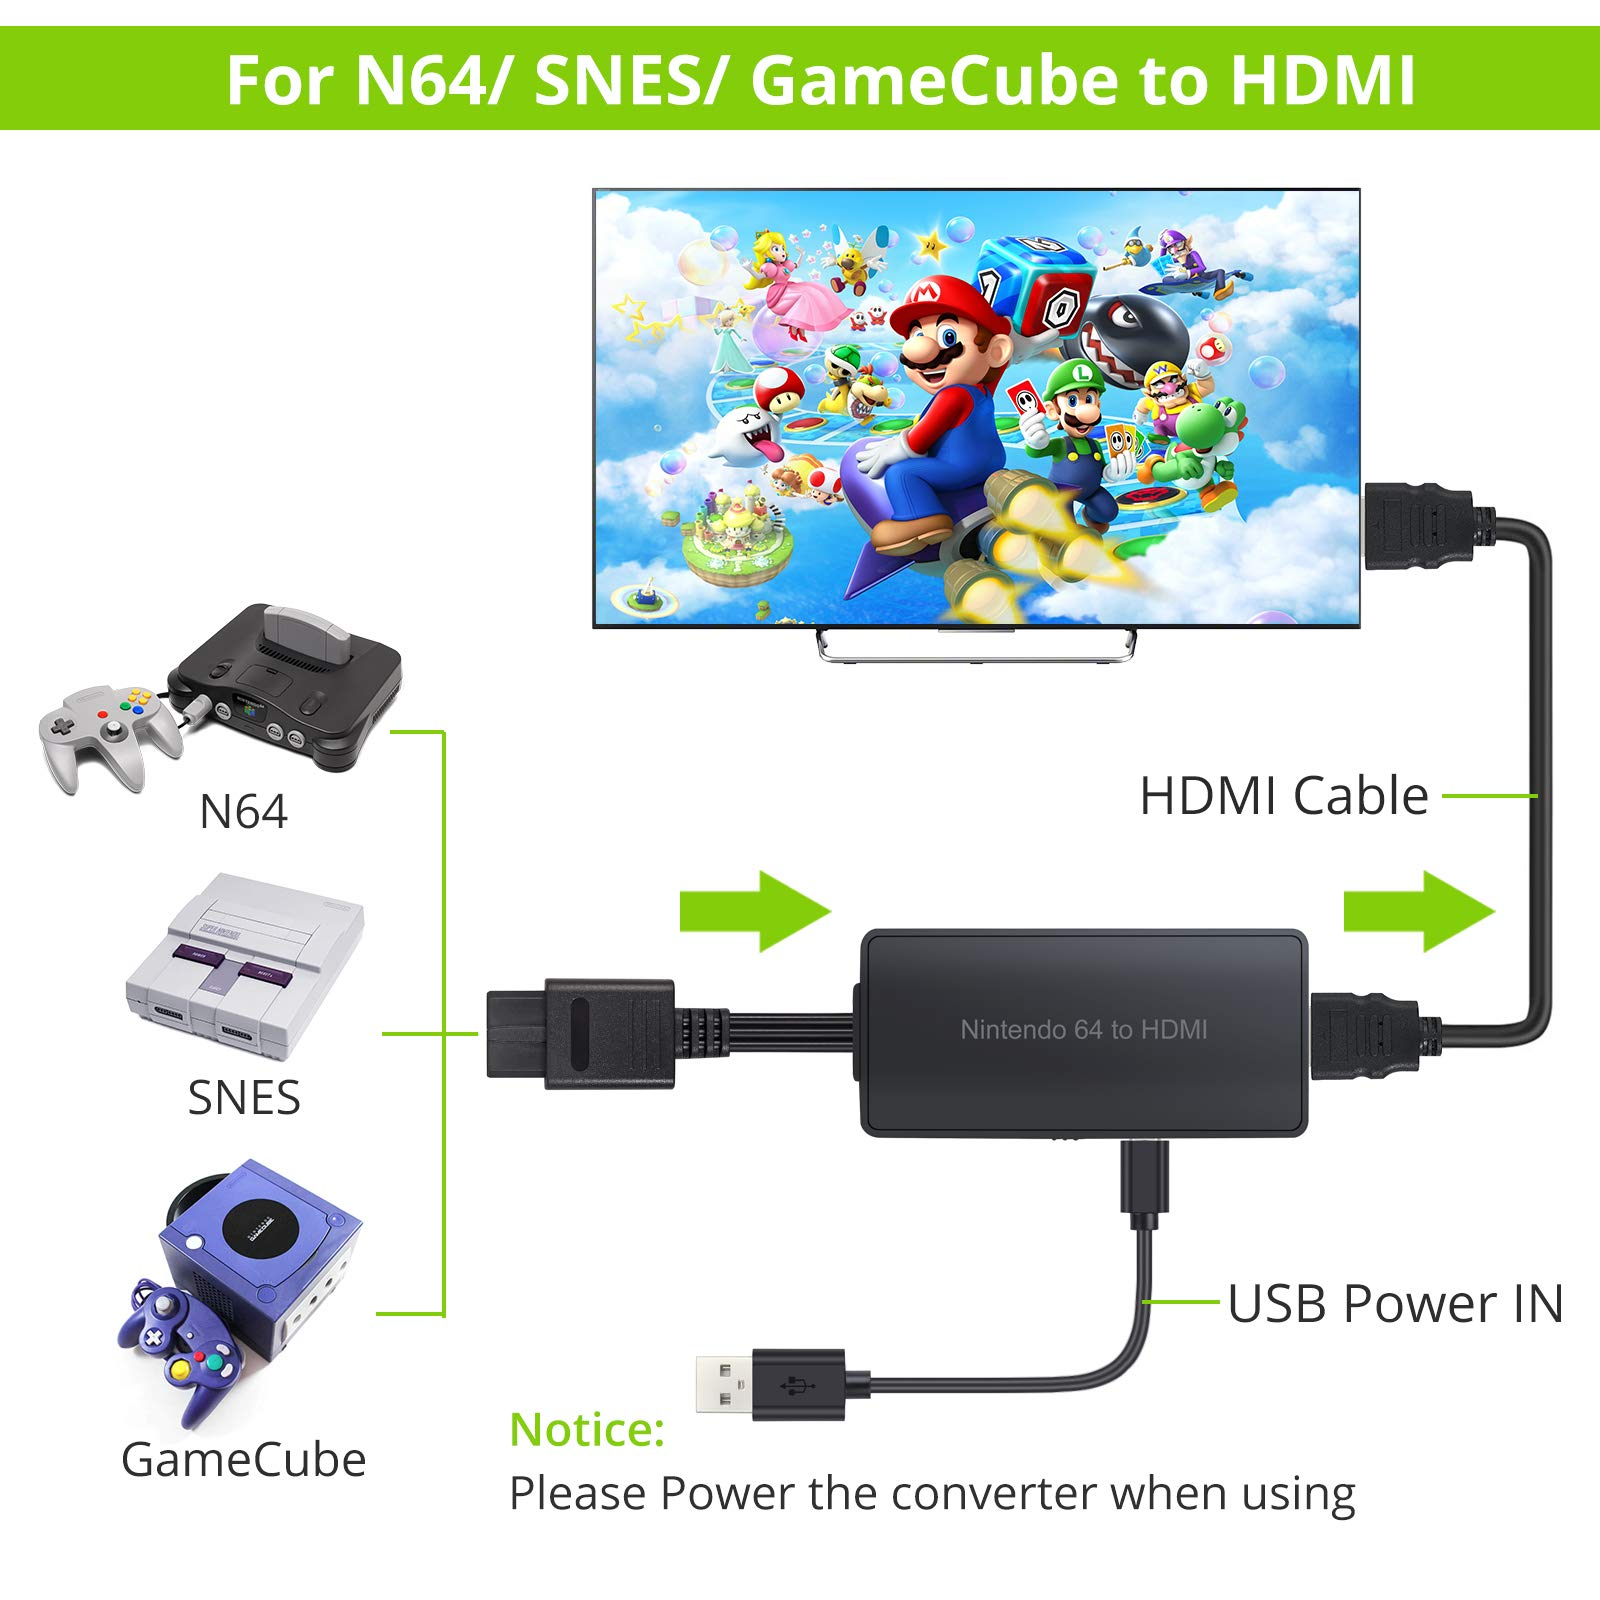 LiNKFOR N64 to HDMI Converter with 3ft HDMI Cable for N64 Gamecube SNES N64 to HDMI Adapter Gamecube to HDMI for HDTV HDMI Monitor Support 16:9 and 4:3 1080P//720P Include Power Adapter